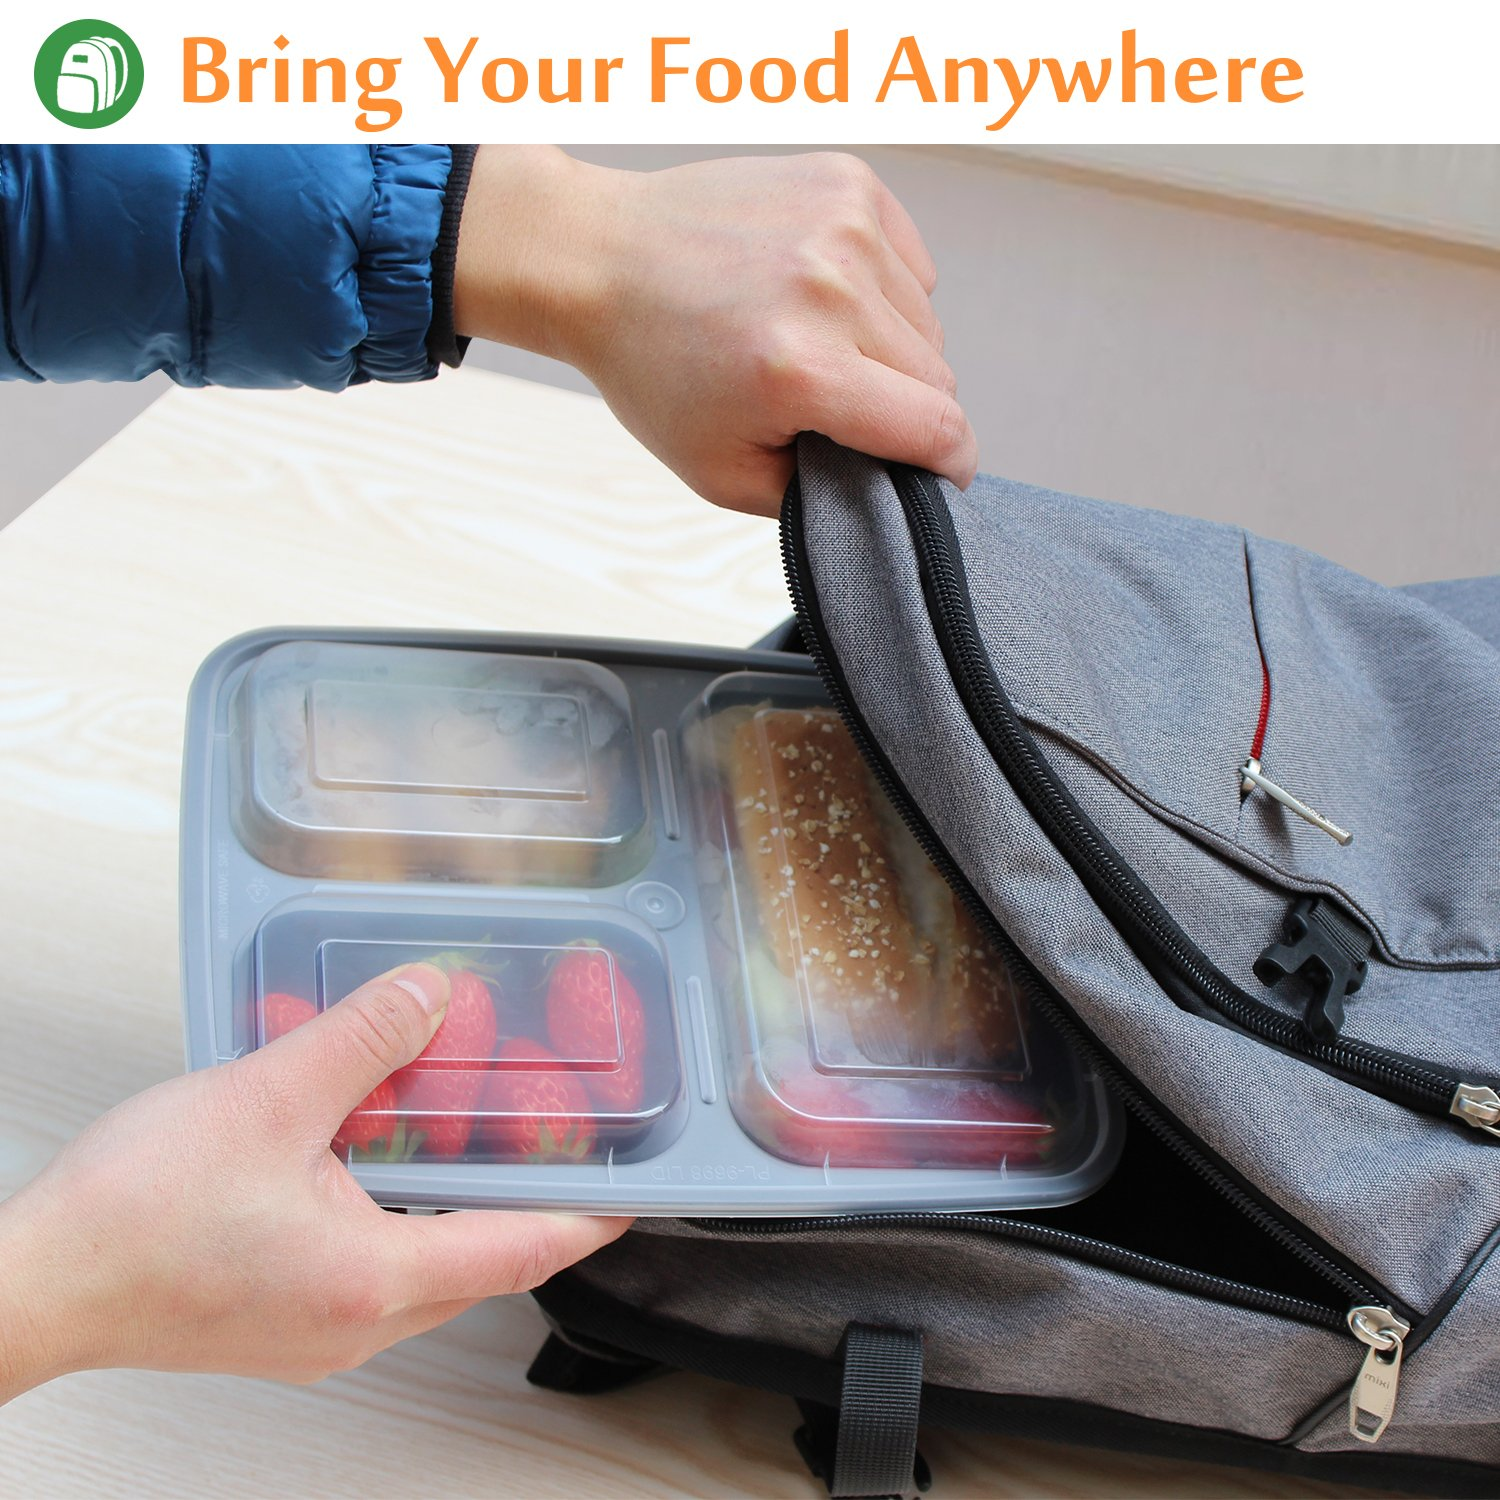 Enther Meal Prep Containers [20 Pack] 3 Compartment with Lids, Food Storage Bento Box   BPA Free   Stackable   Reusable Lunch Boxes, Microwave/Dishwasher/Freezer Safe,Portion Control (36 oz) by Enther (Image #3)